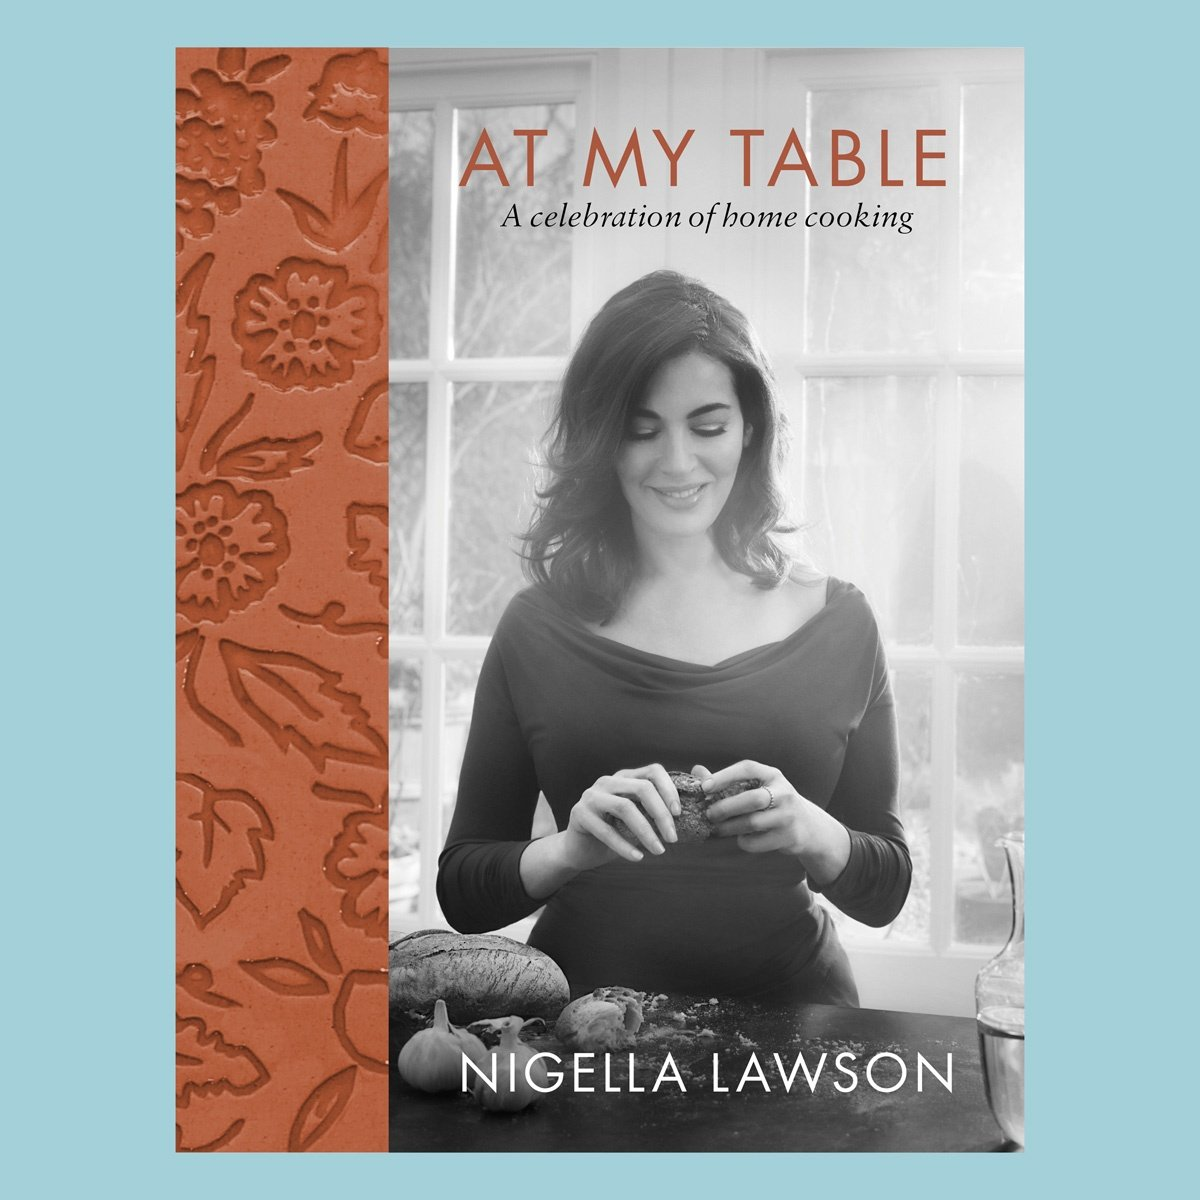 At My Table Nigella Lawson free pdf download